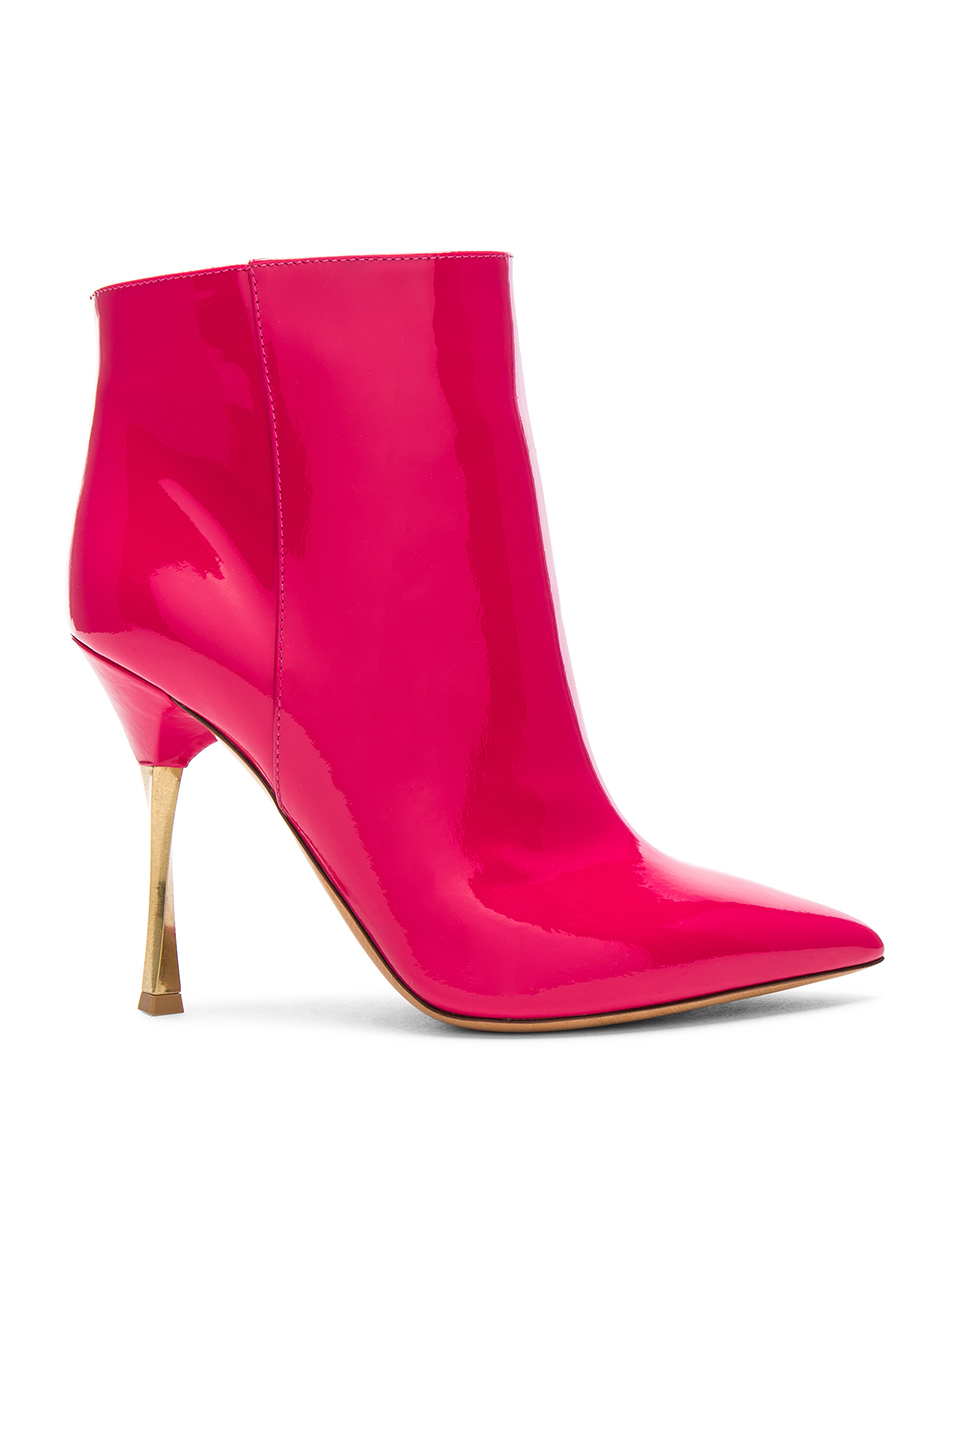 d737e664fb2 Valentino Patent Leather Ankle Boots; Valentino Patent Leather Ankle Boots  ...